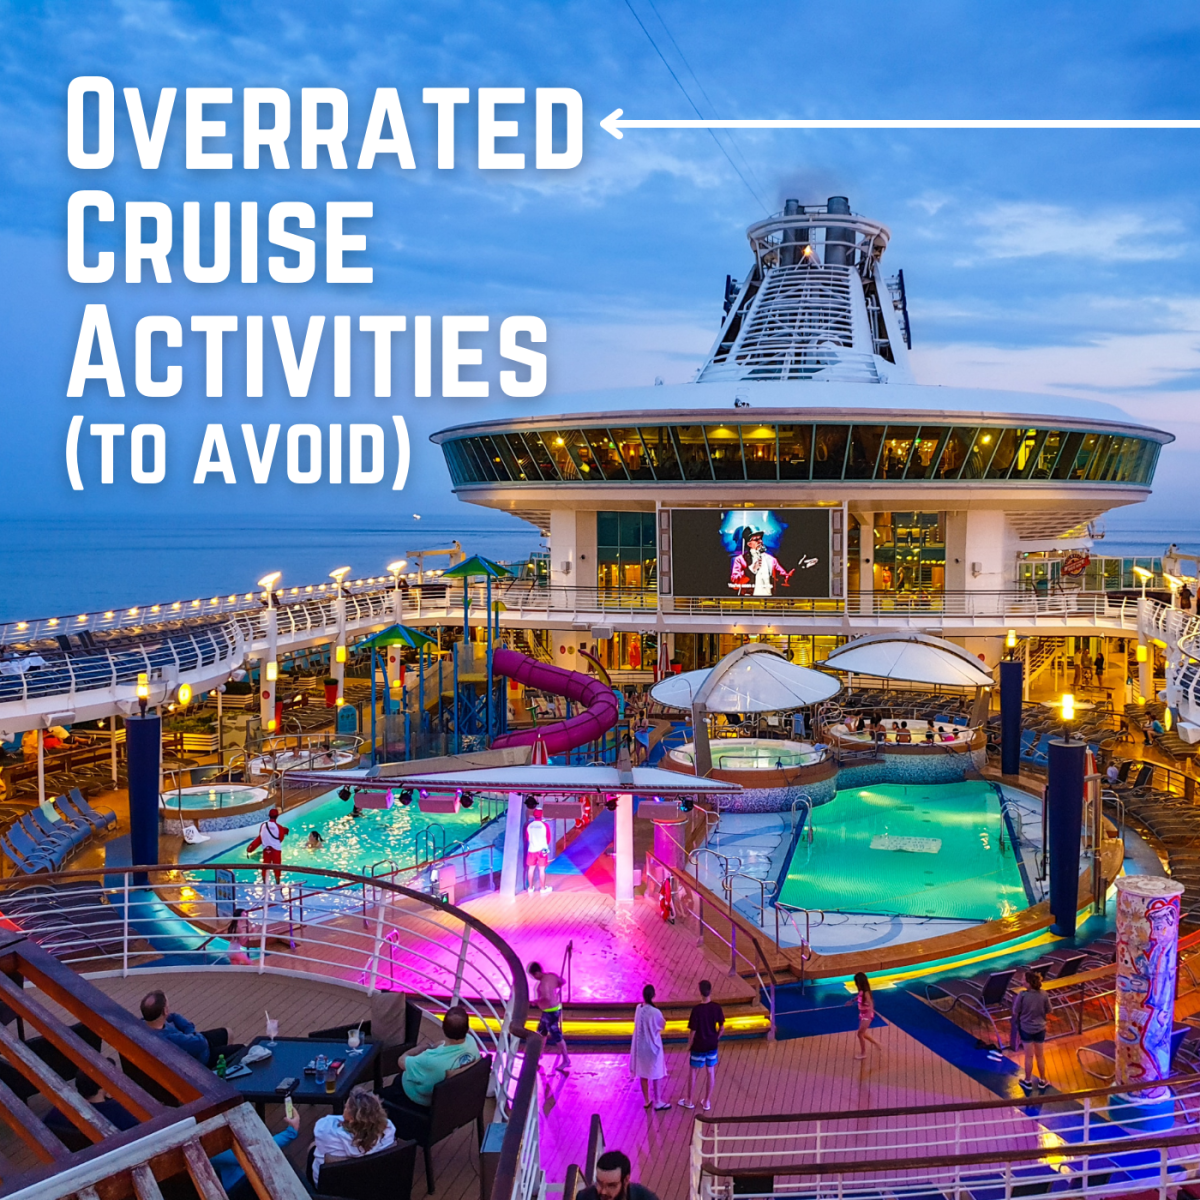 Which cruise activities should you avoid to make your budget stretch further?